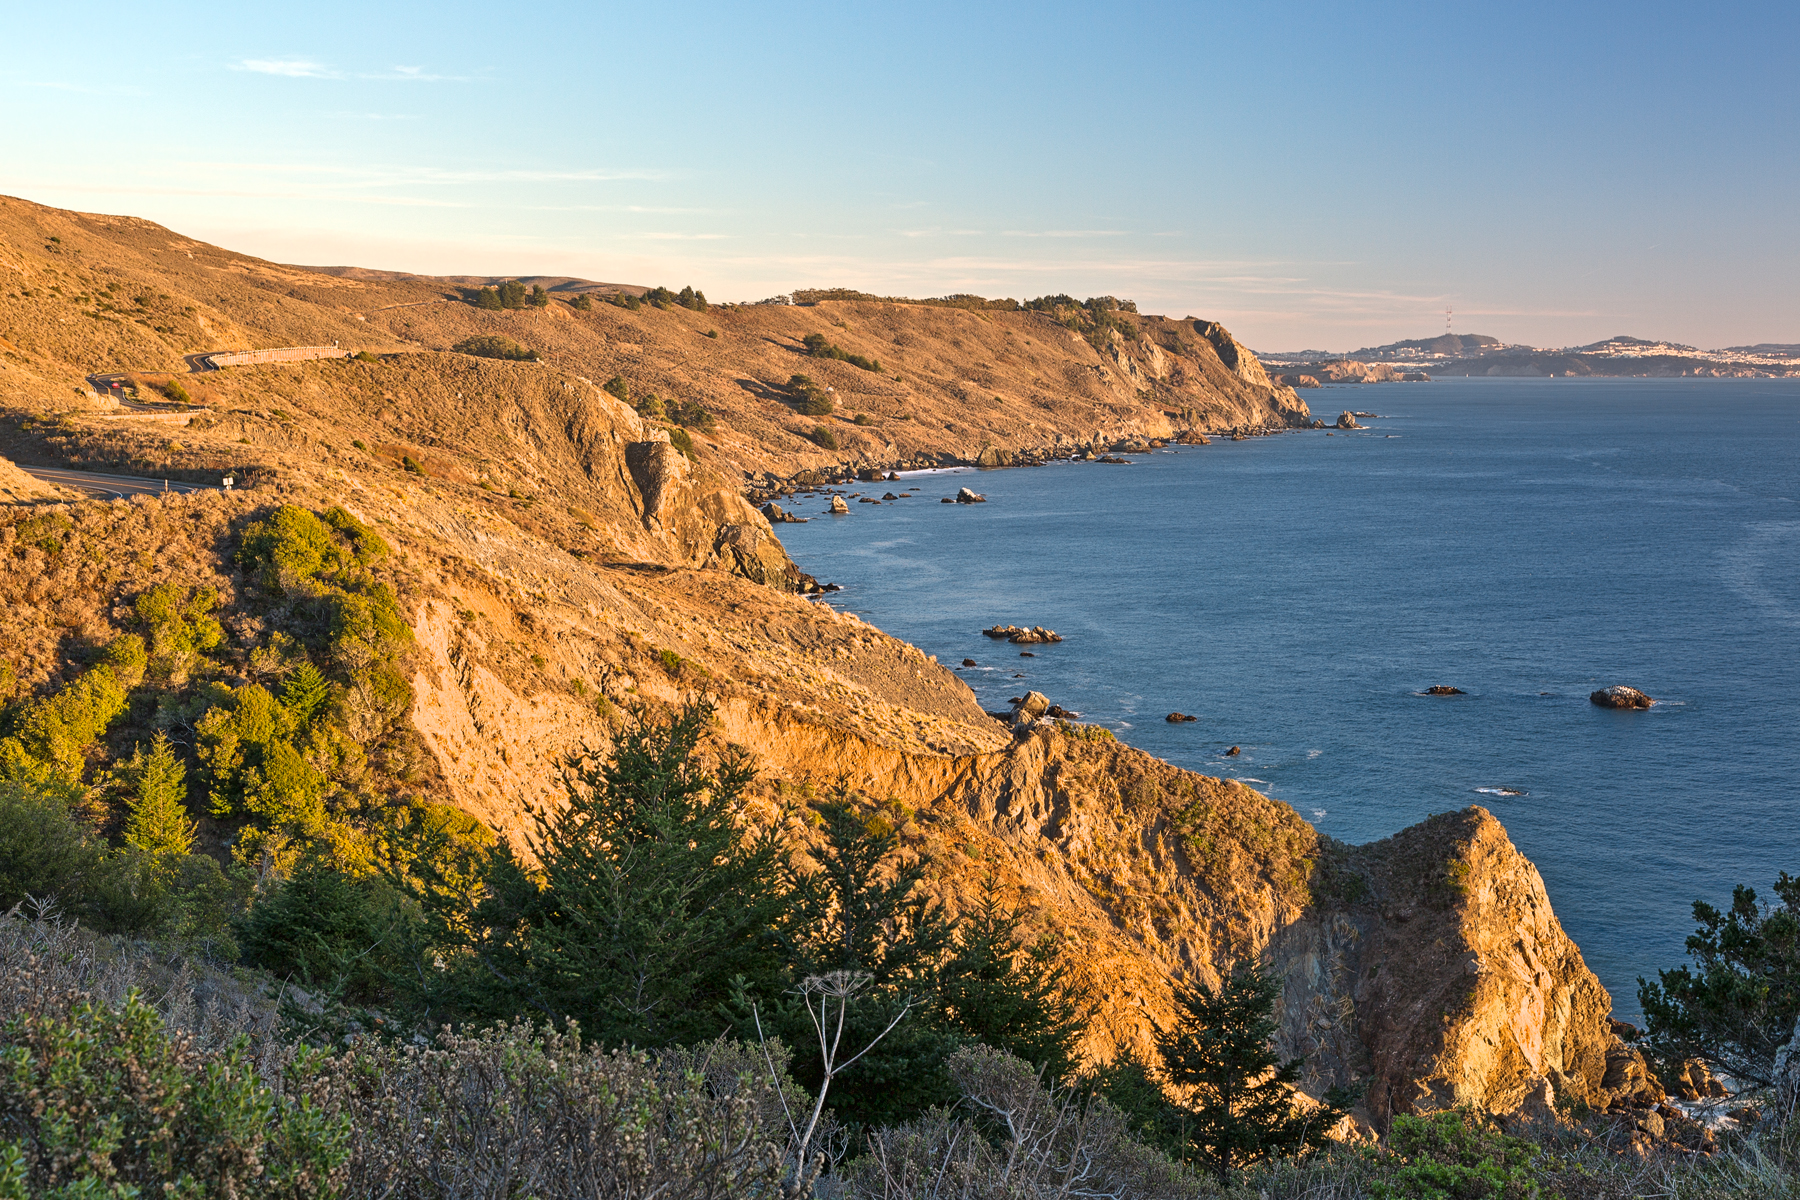 Point reyes sunset coast - hdr photo